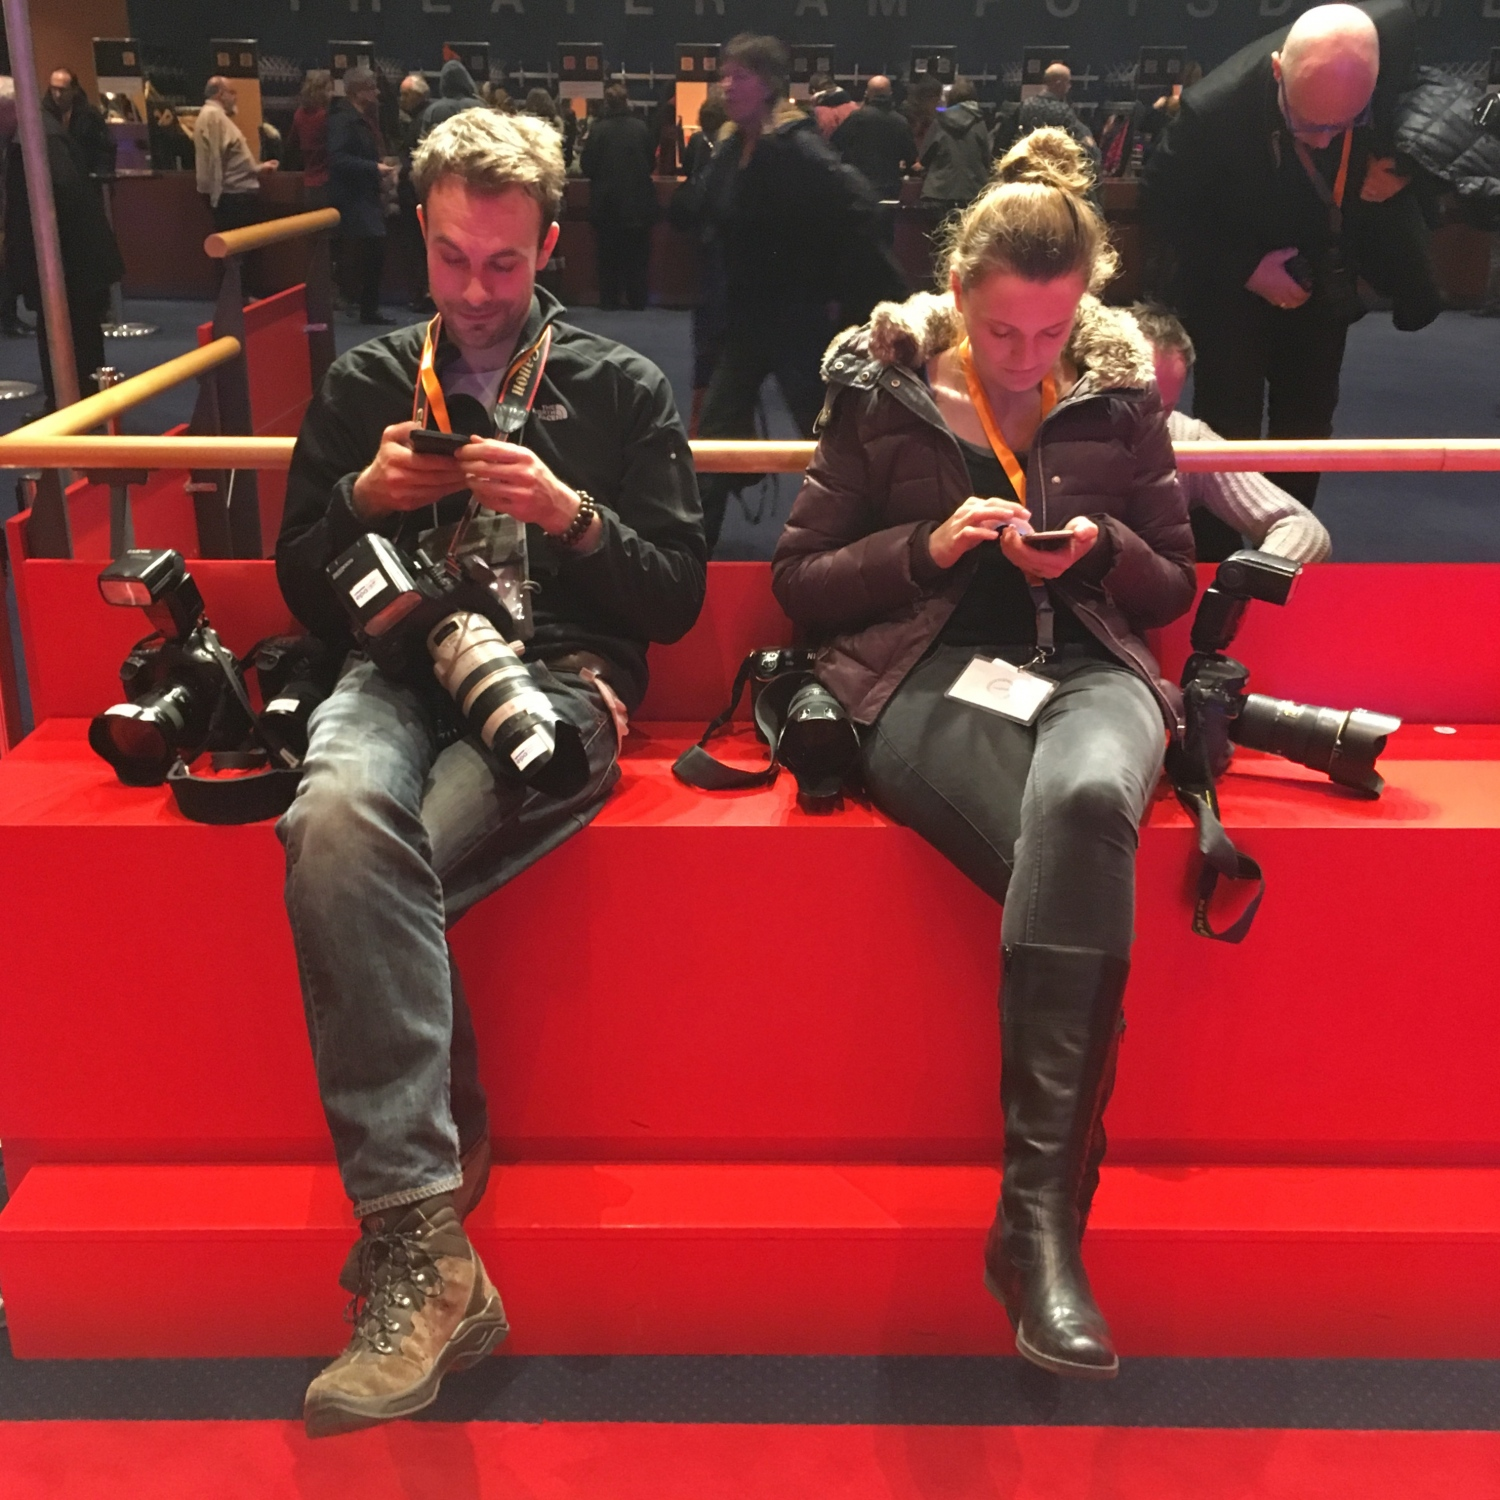 berlinale - smartphone and photogear